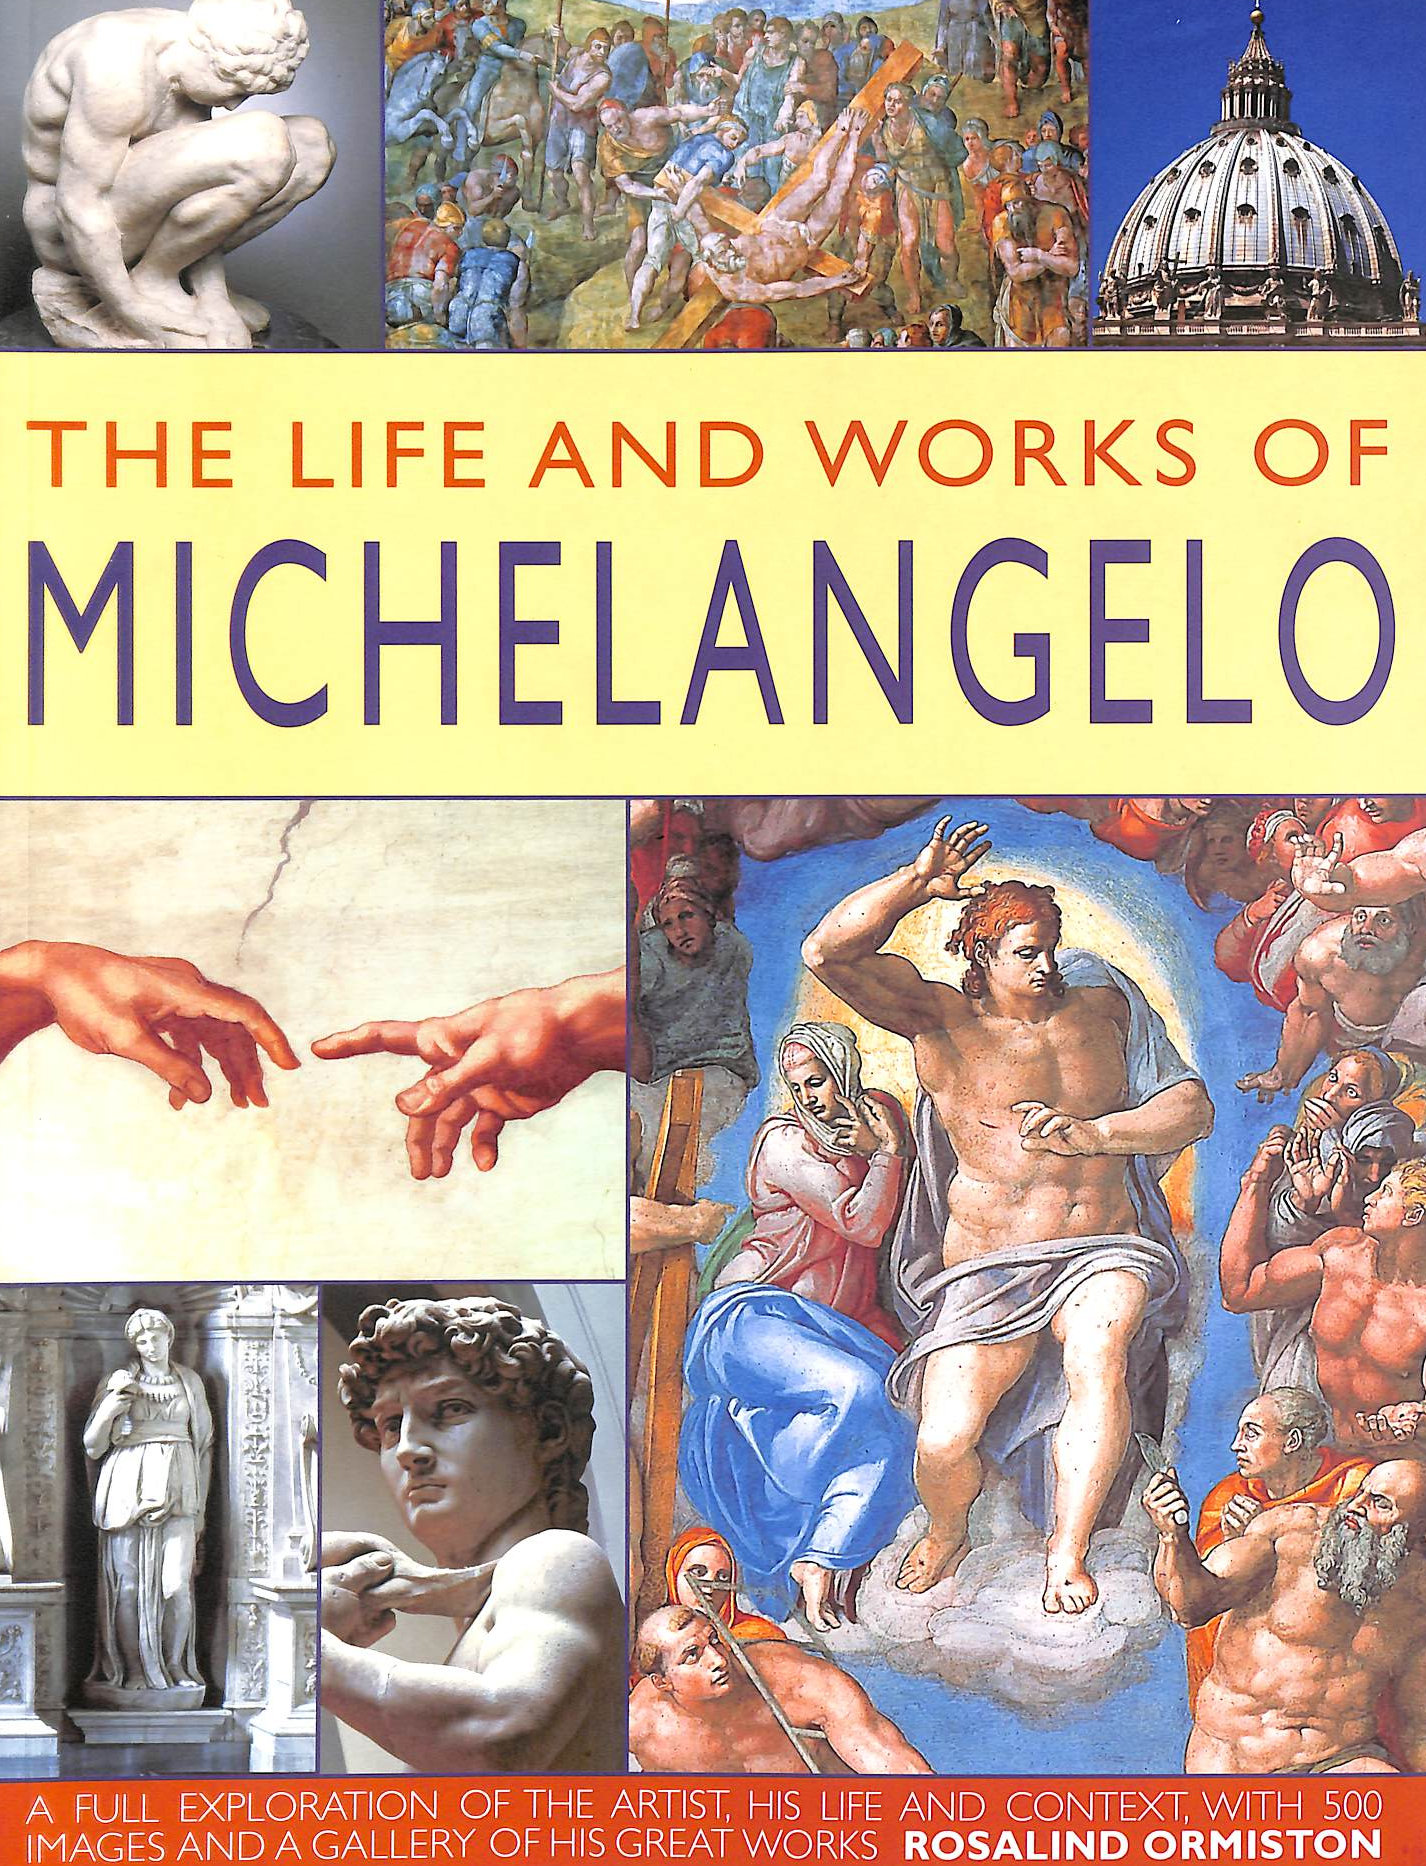 Image for The Life and Works of Michelangelo. A Full Exploration of the Artist, His Life and Context, with 500 Images and a Gallery of His Great Works.